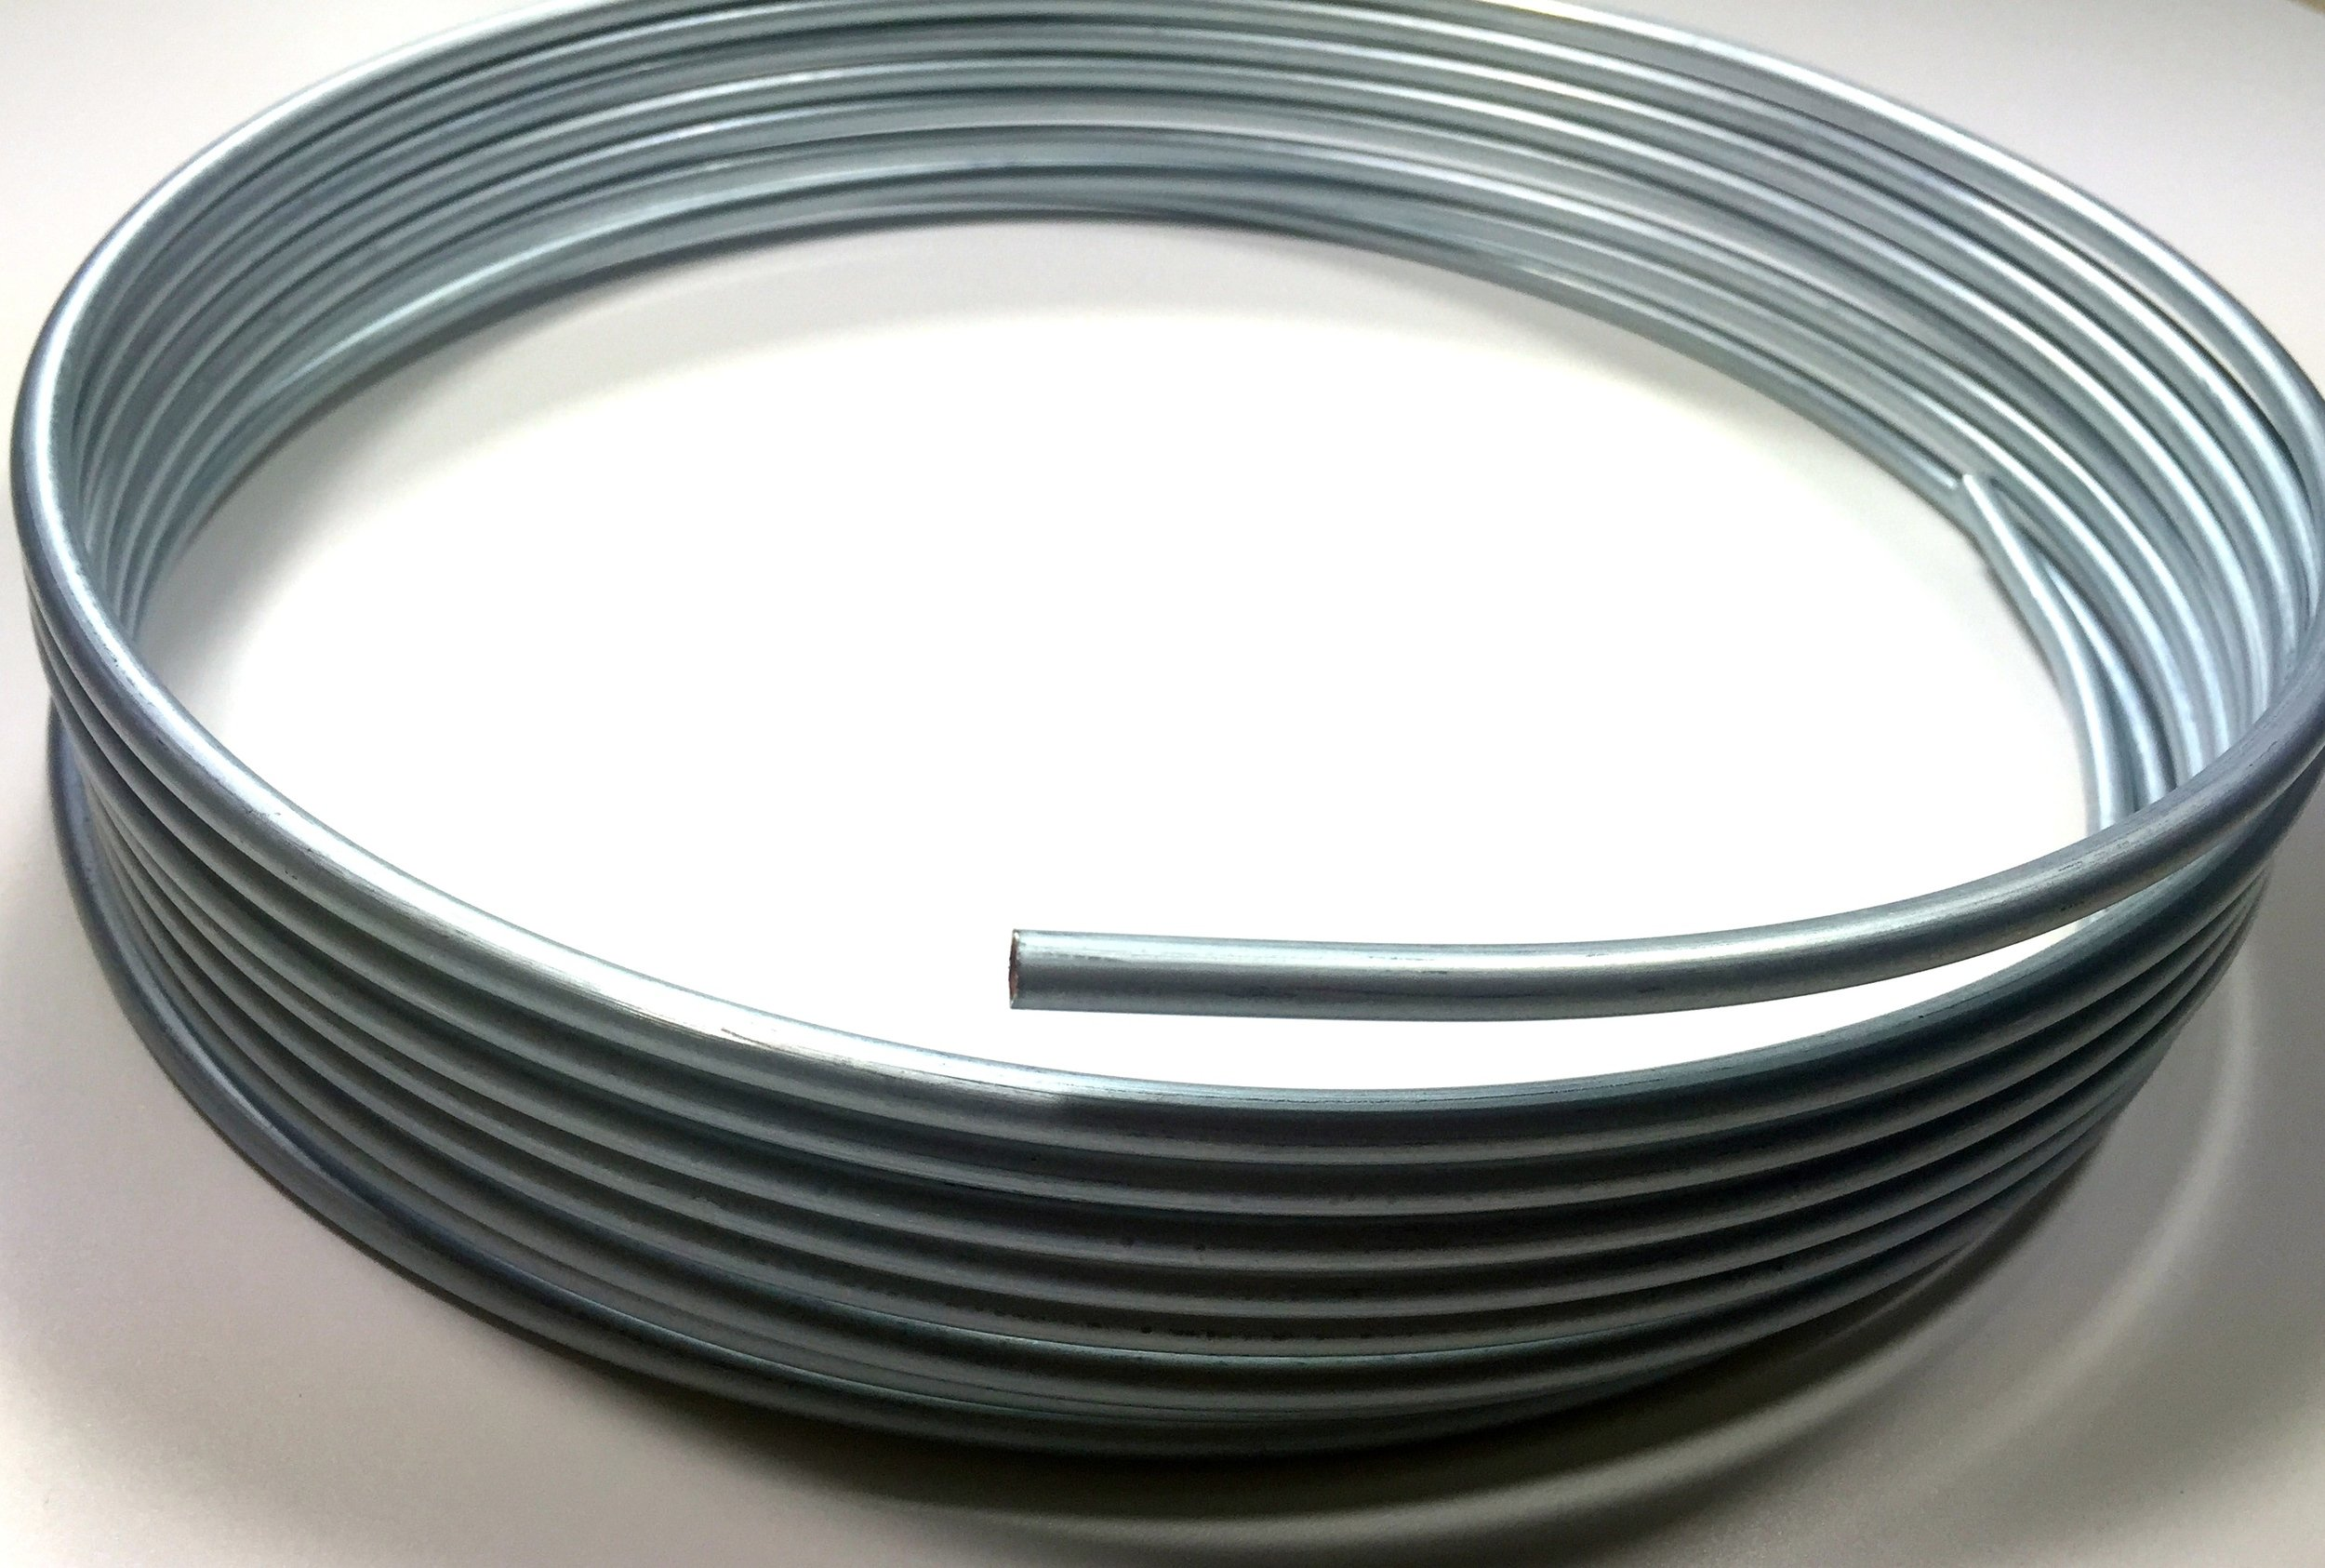 25 ft. Roll of Zinc Plated 5/16 Tubing - Fuel or Transmission